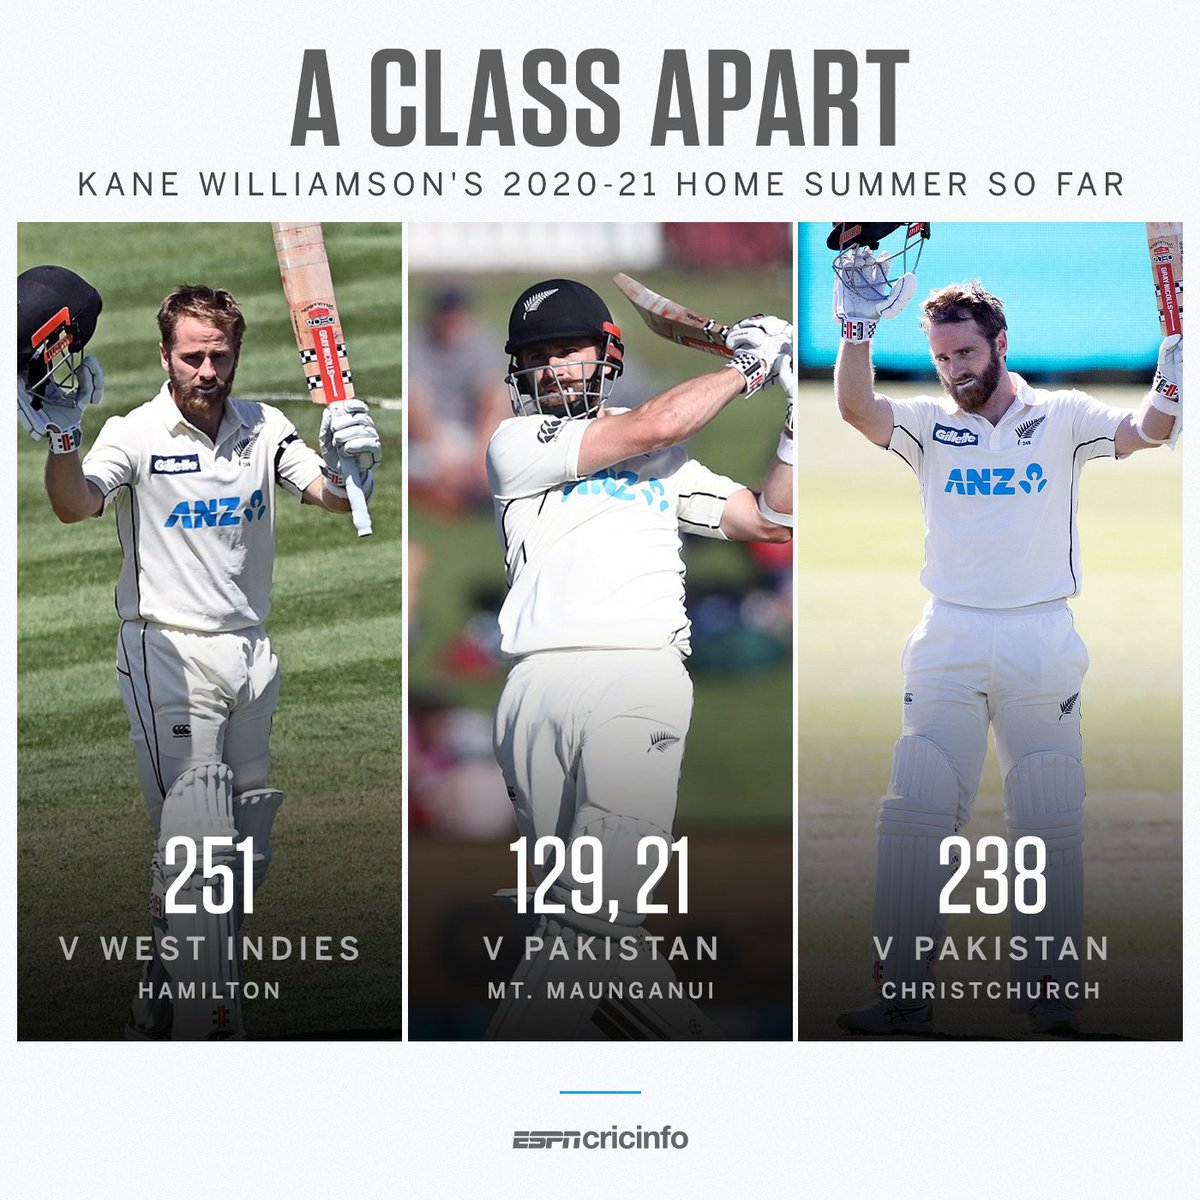 Kane Williamson in his last three Tests: 639 runs with an average of 159.75 🔥  No surprise that the NZ skipper is Test cricket's No. 1 batsman 👑  #NZvWI #NZvPAK  + Follow @Dish_Sport_Live